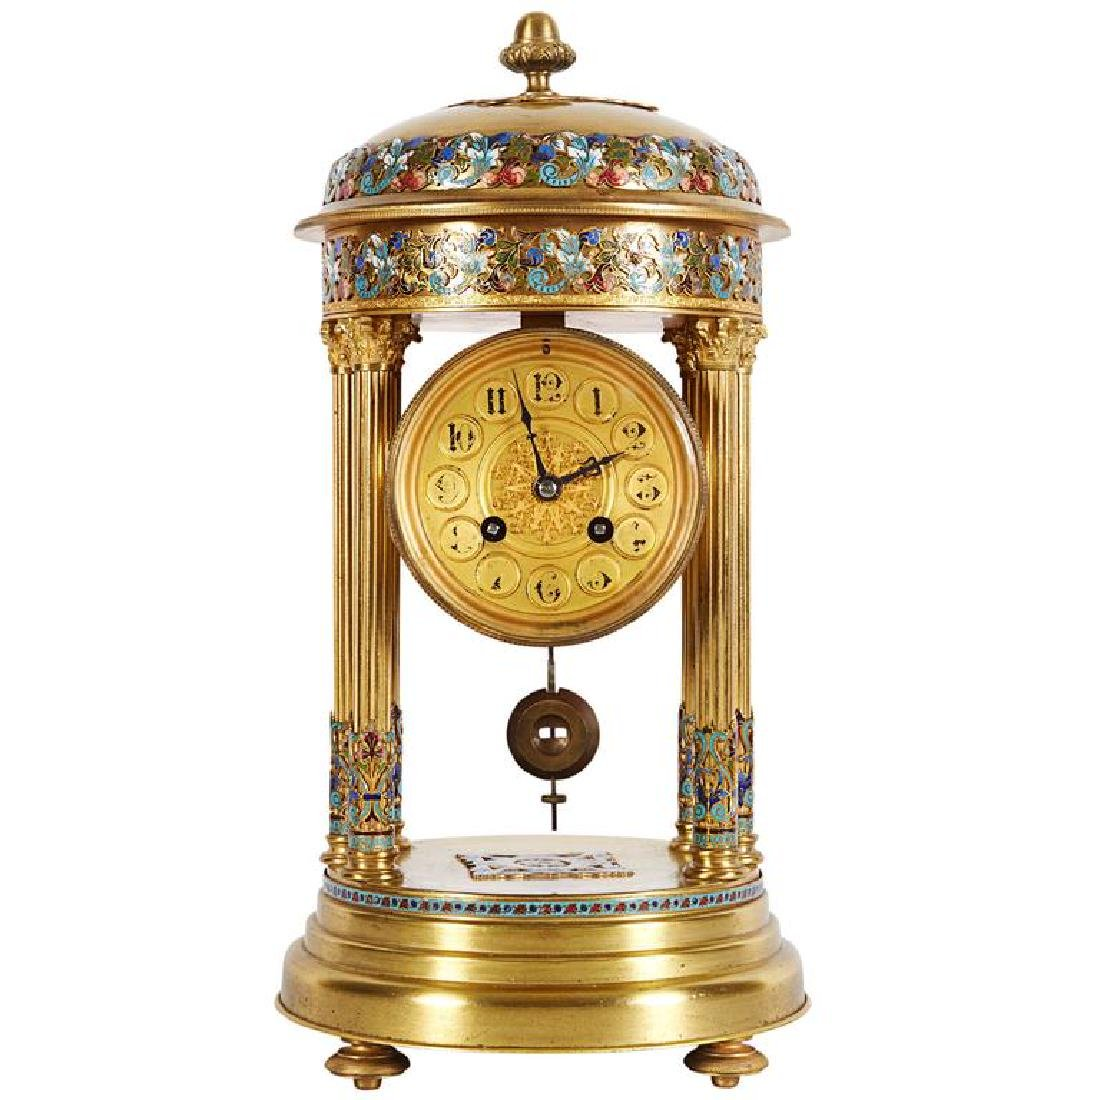 French Cloisonne Champleve Enamel Round Mantle Clock